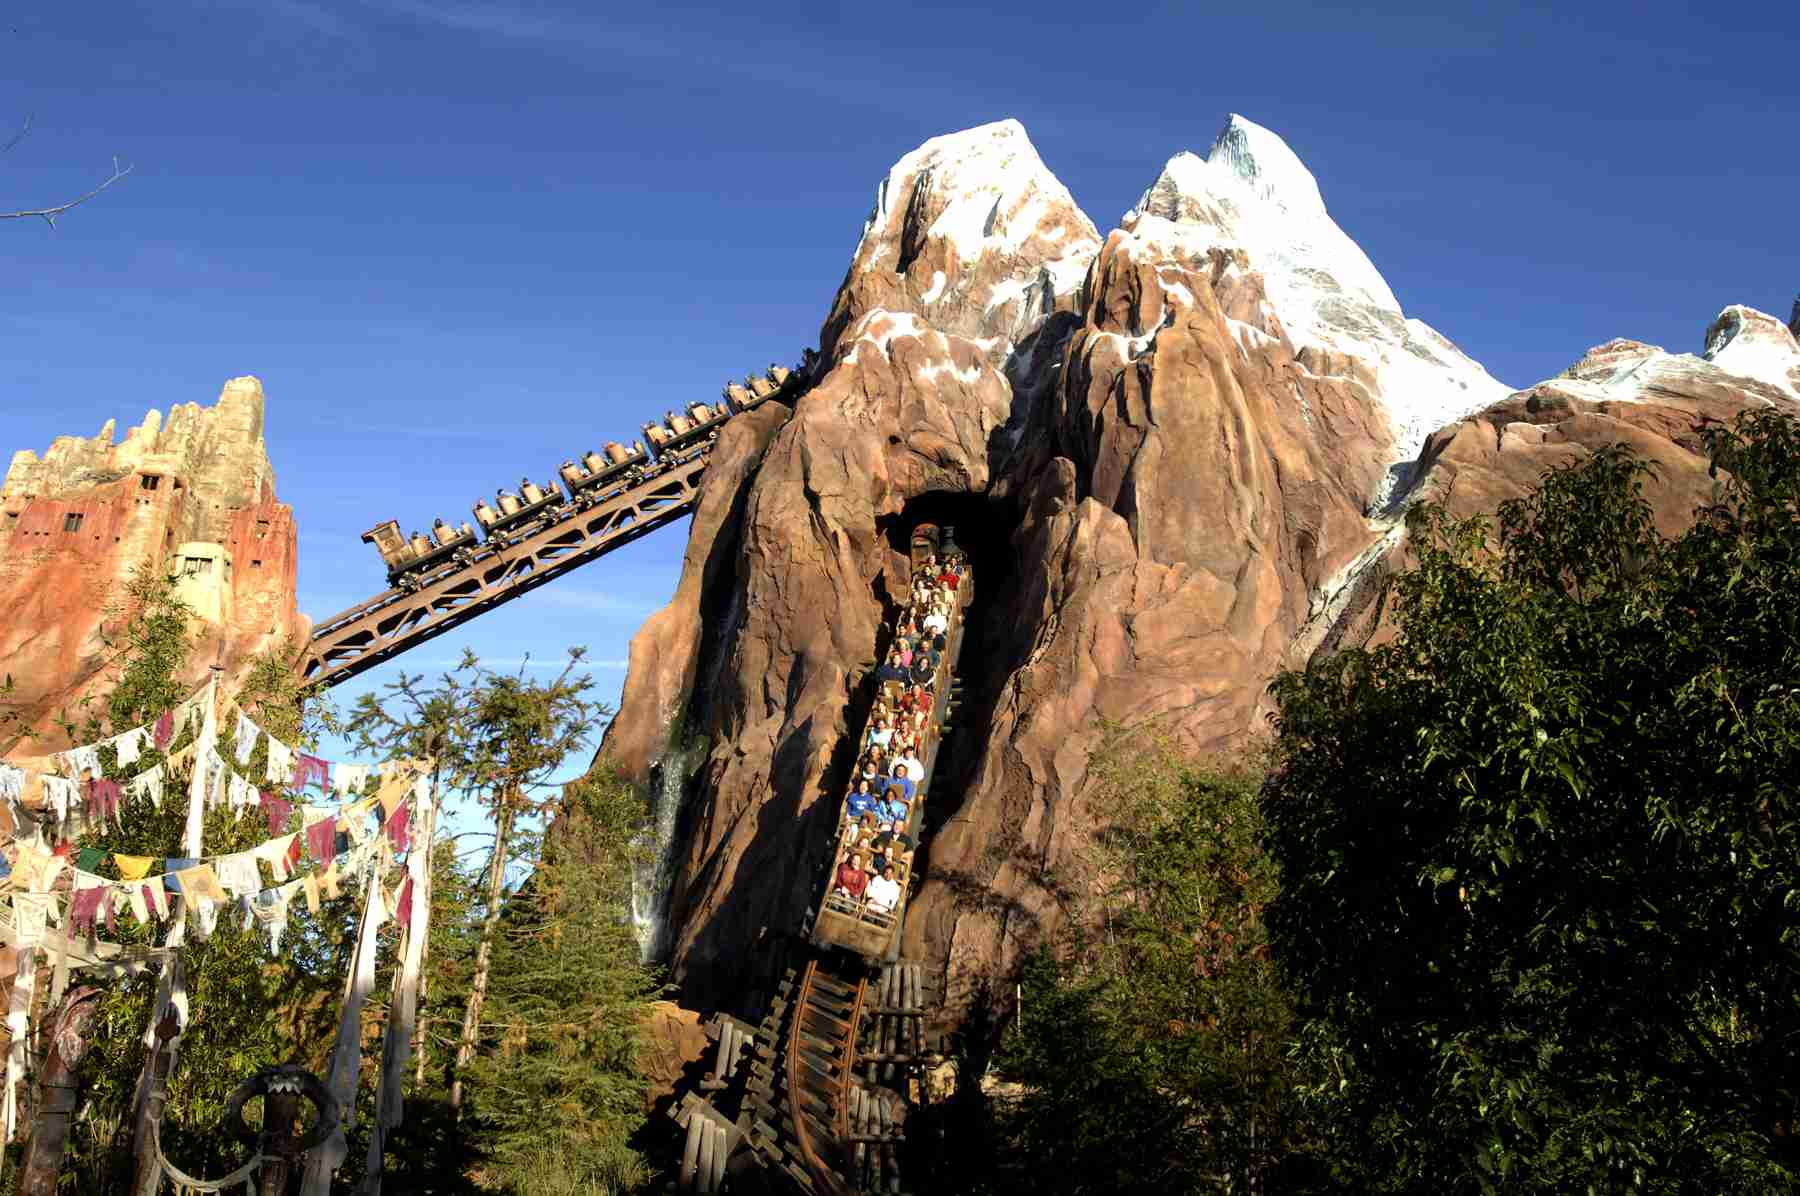 Florida\'s Tallest Rides - Which Ones Measure Up?